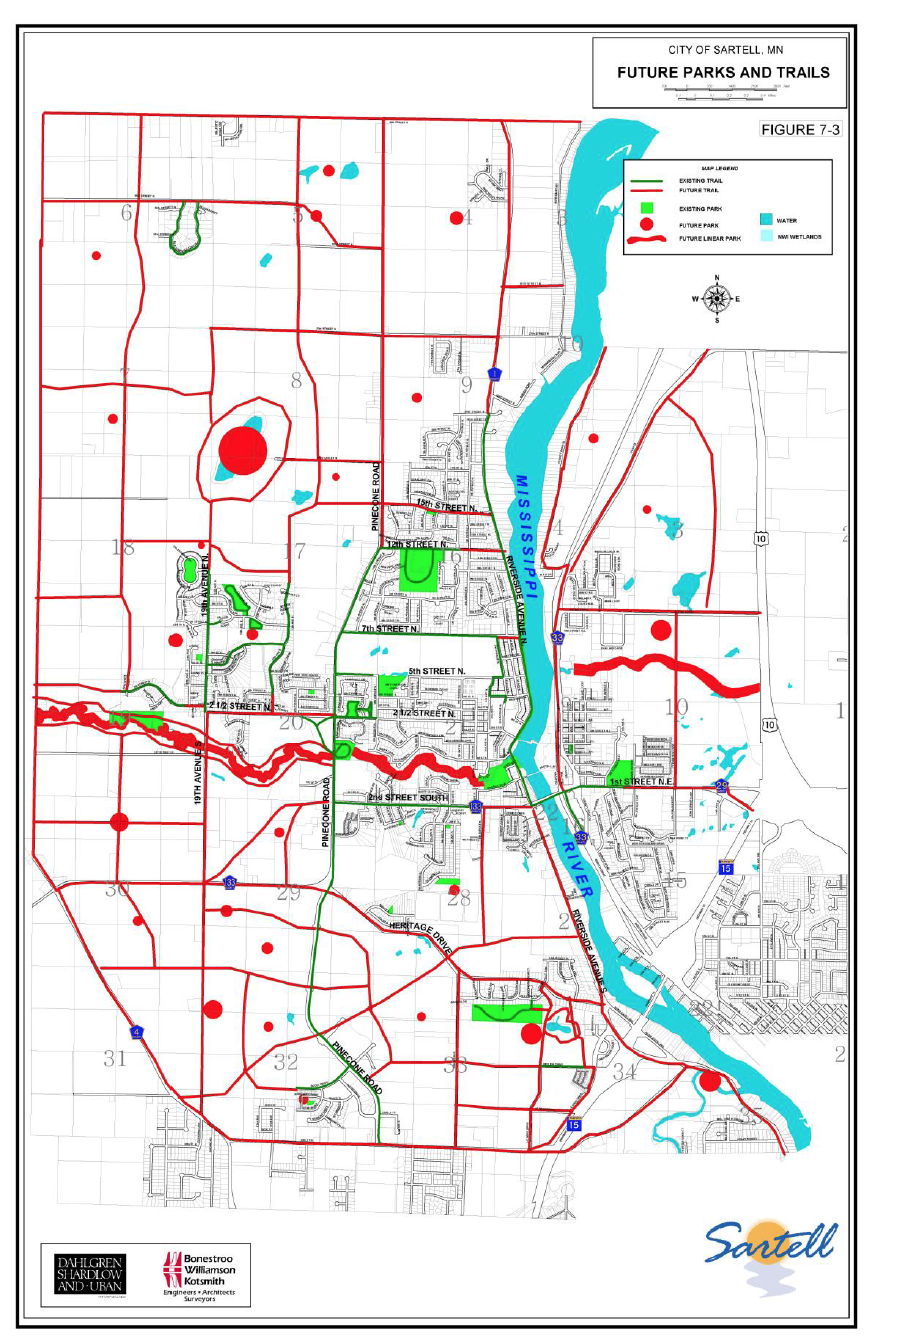 Red represents future parks or walkways. The red around Watab Creek makes me happy. I think that is something worth exploring.